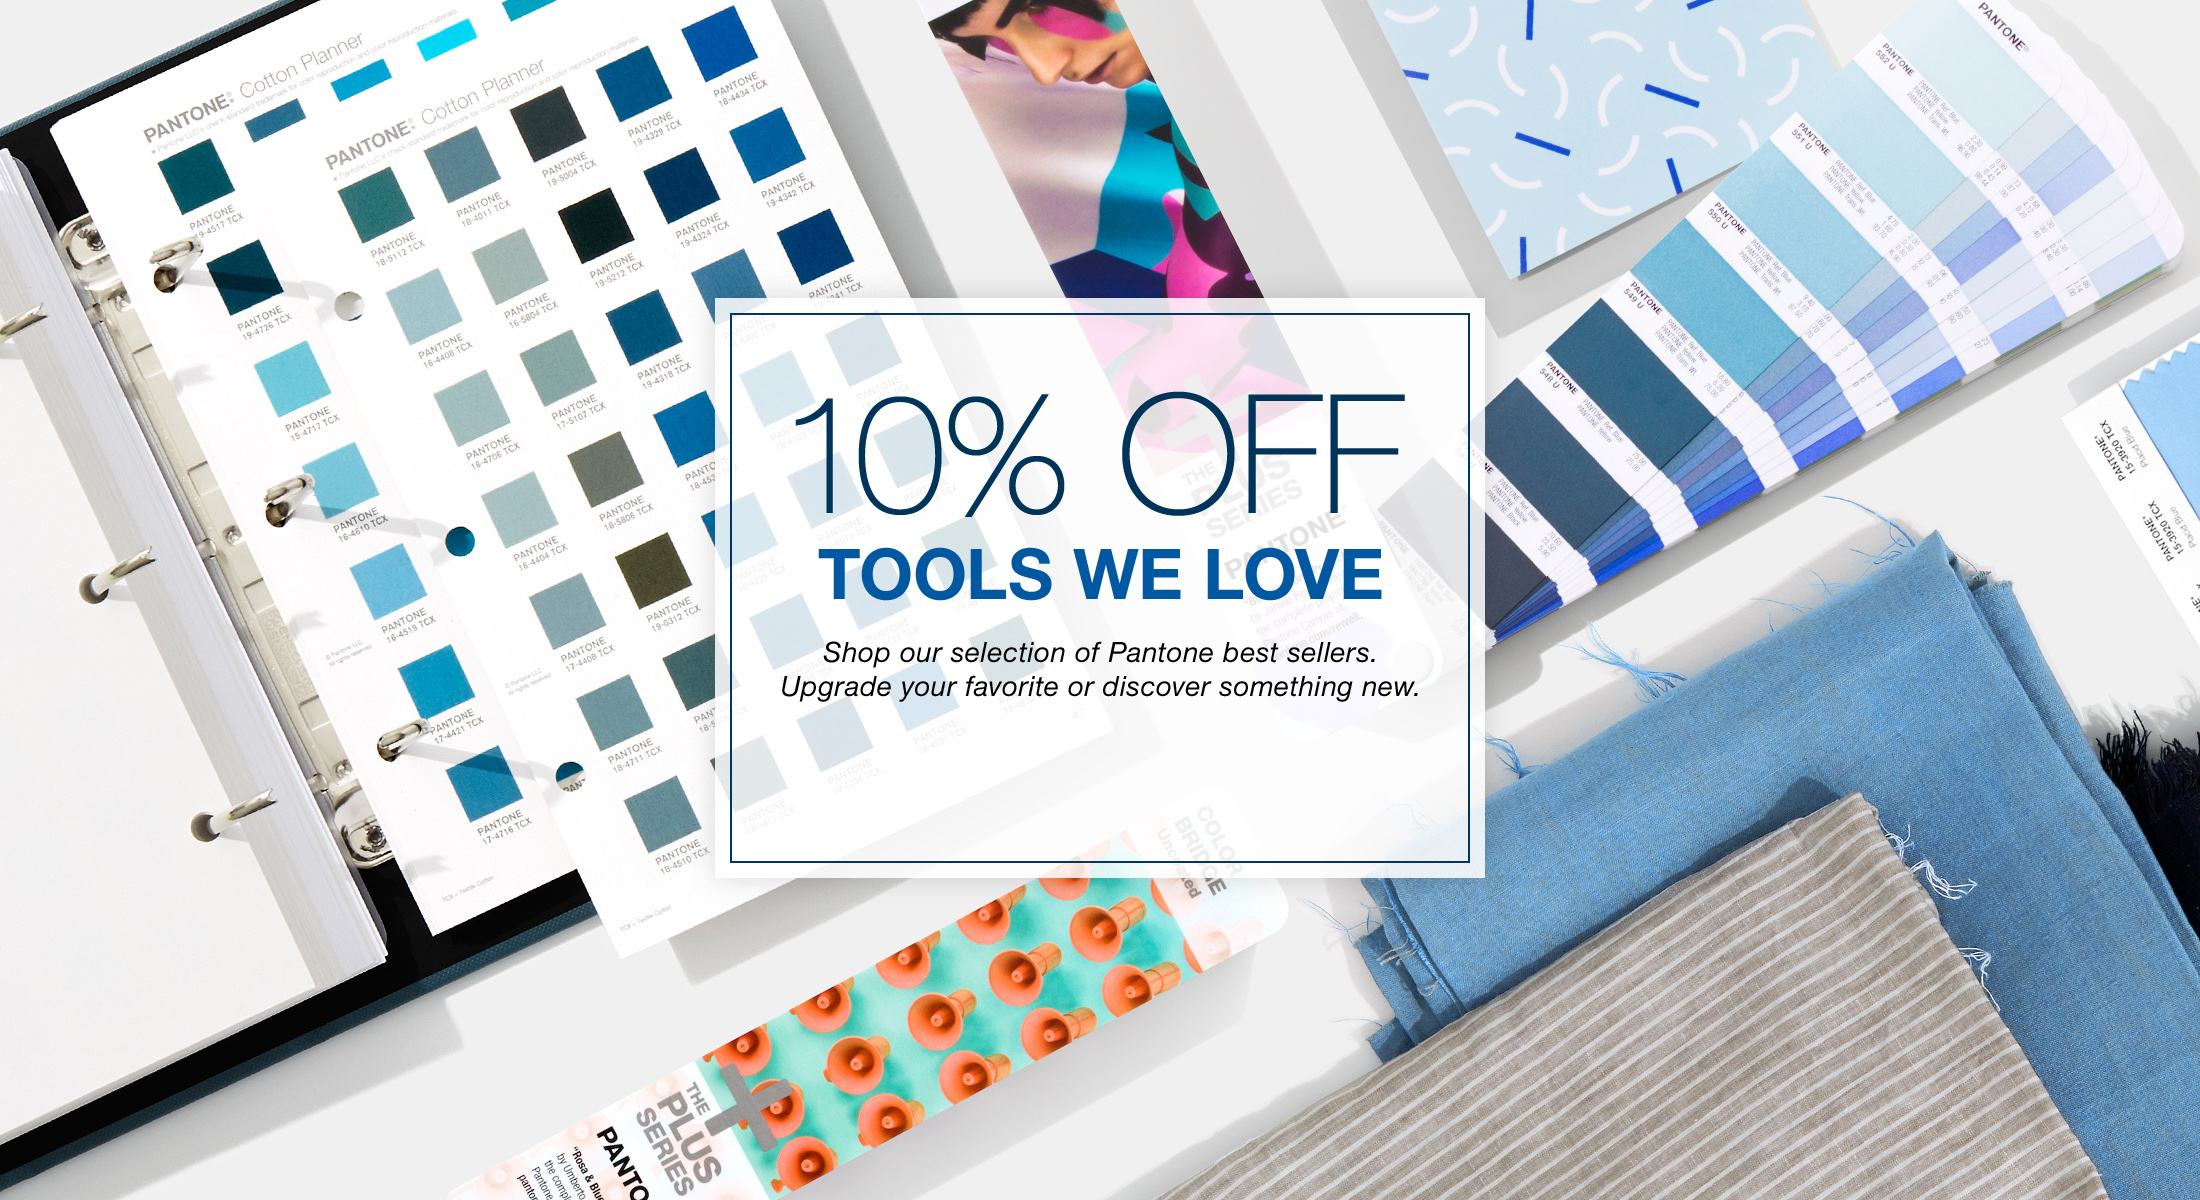 10% off promotion - Pantone Products we love